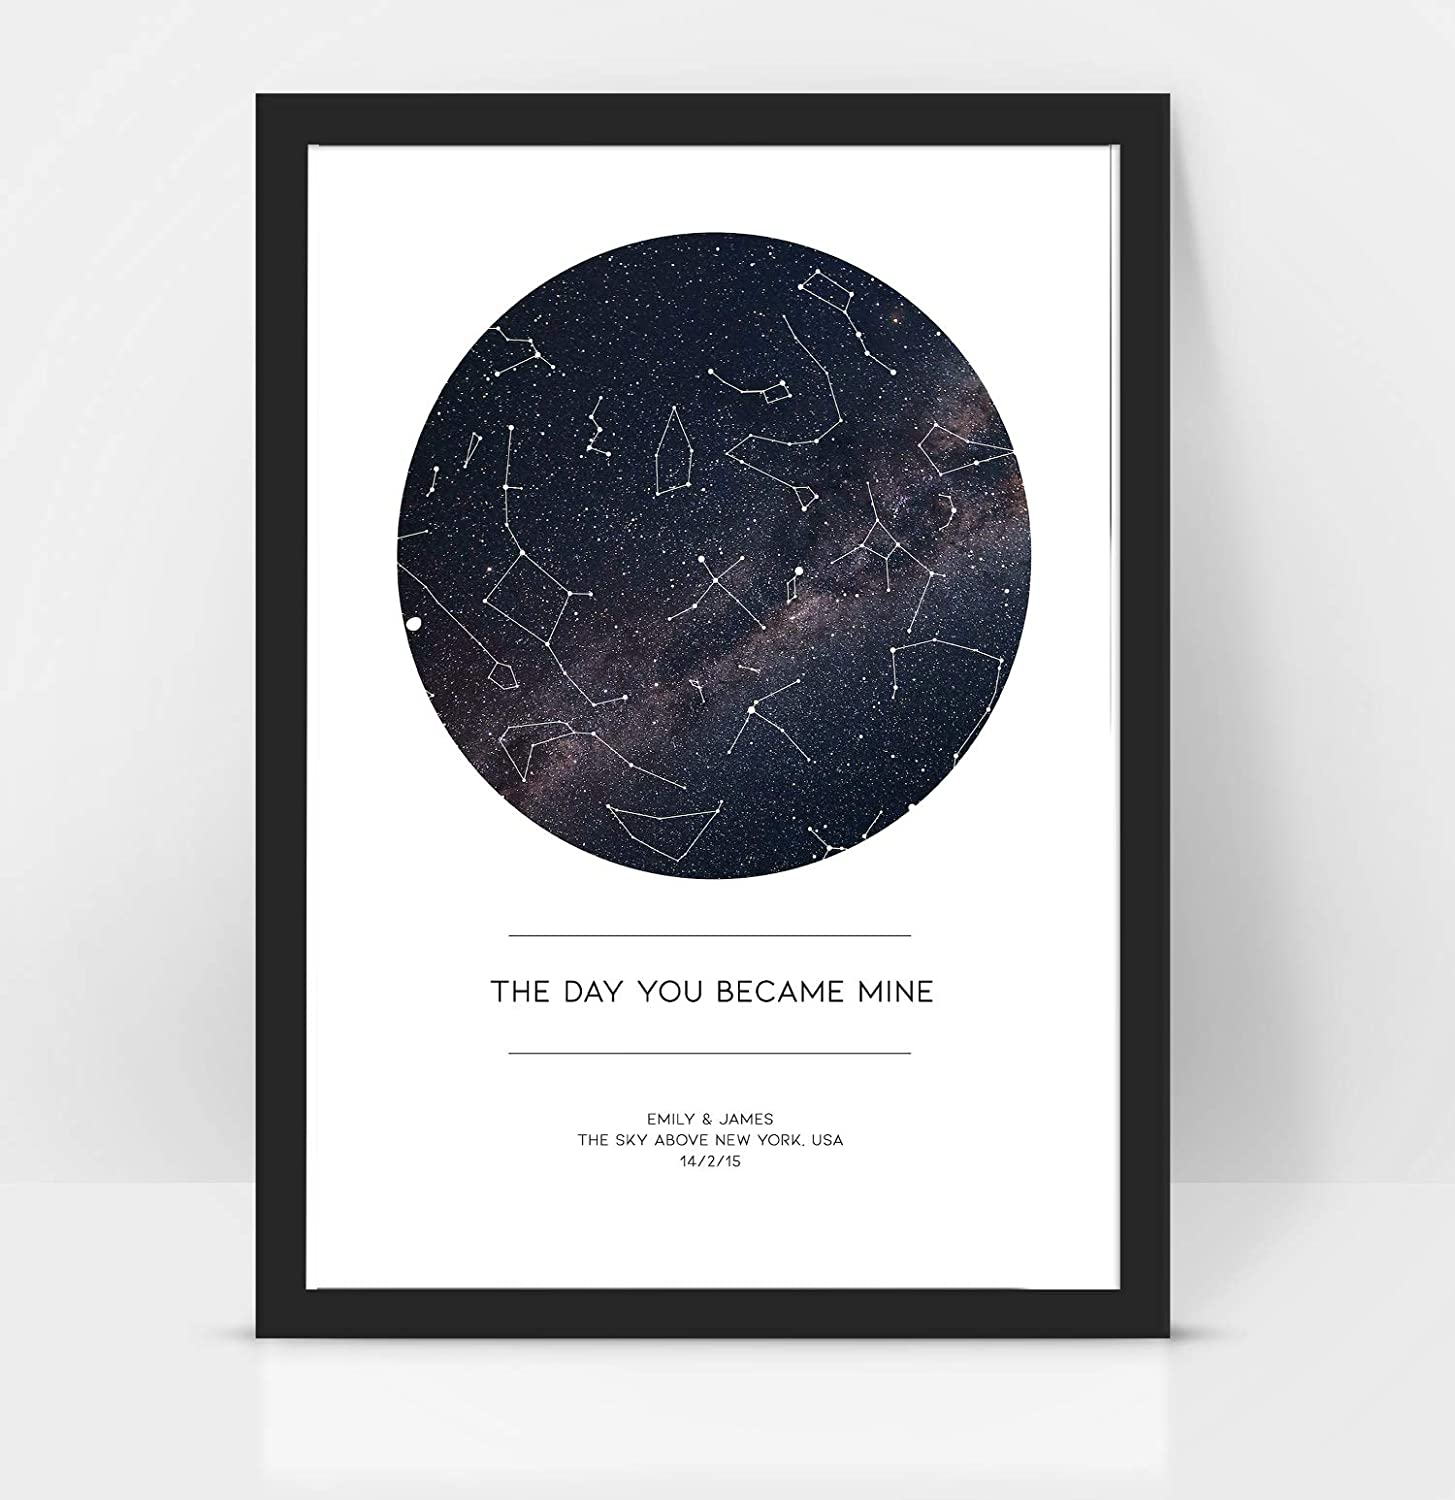 Personalizzato 'The Day You Became Mine' Anniversario/Matrimonio – Regalo Star MAP/Constellation Night Sky Print – regalo di compleanno/San Valentino A3 bianco